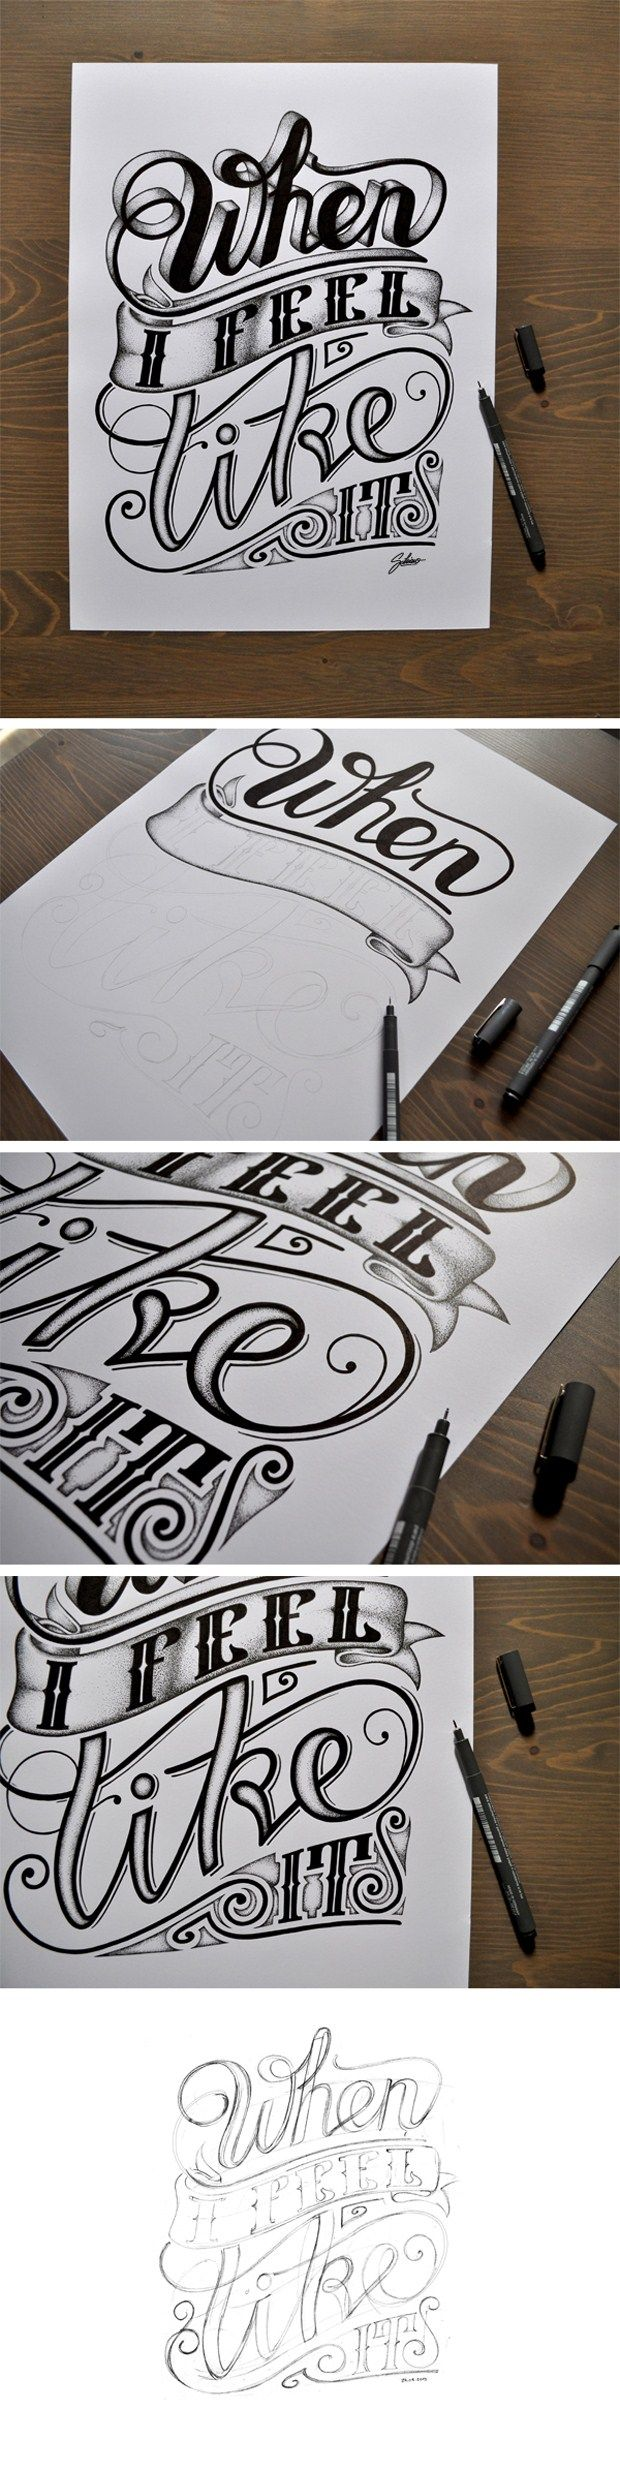 Steps of Hand lettering & inking. When I feel like it, Typography Design for Your Inspiration